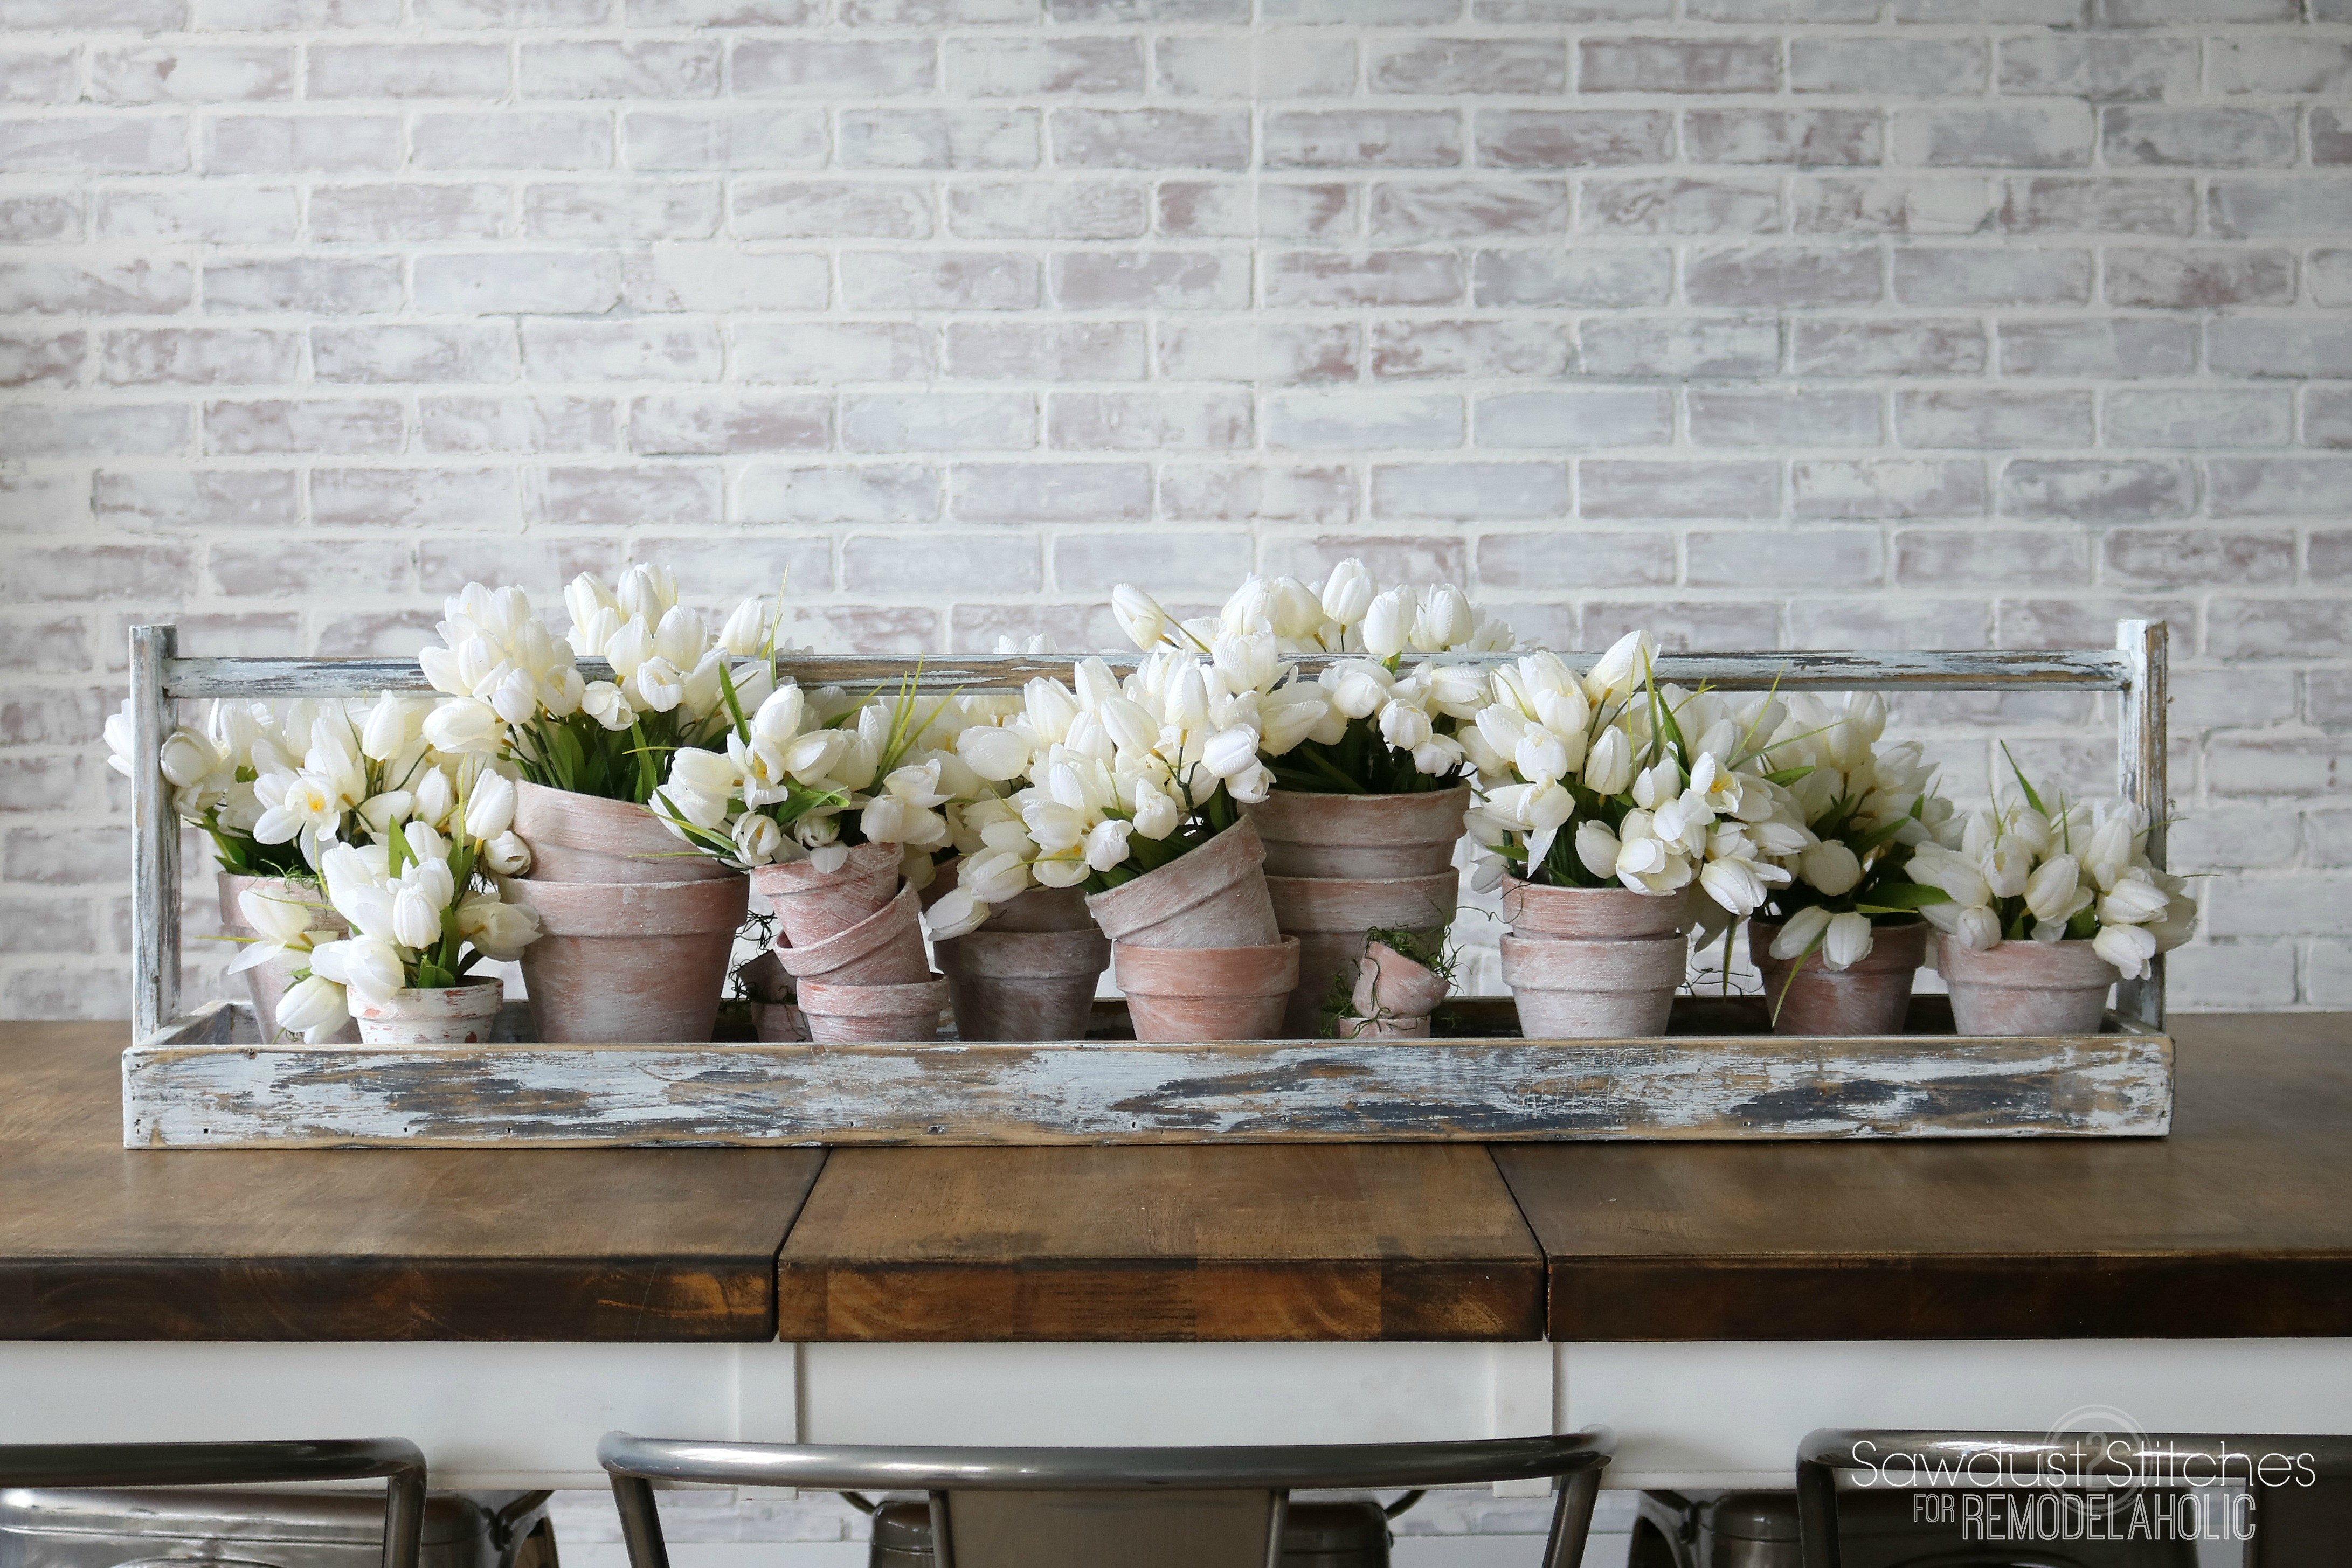 Remodelaholic  DIY Long Table Runner Tray for a Centerpiece